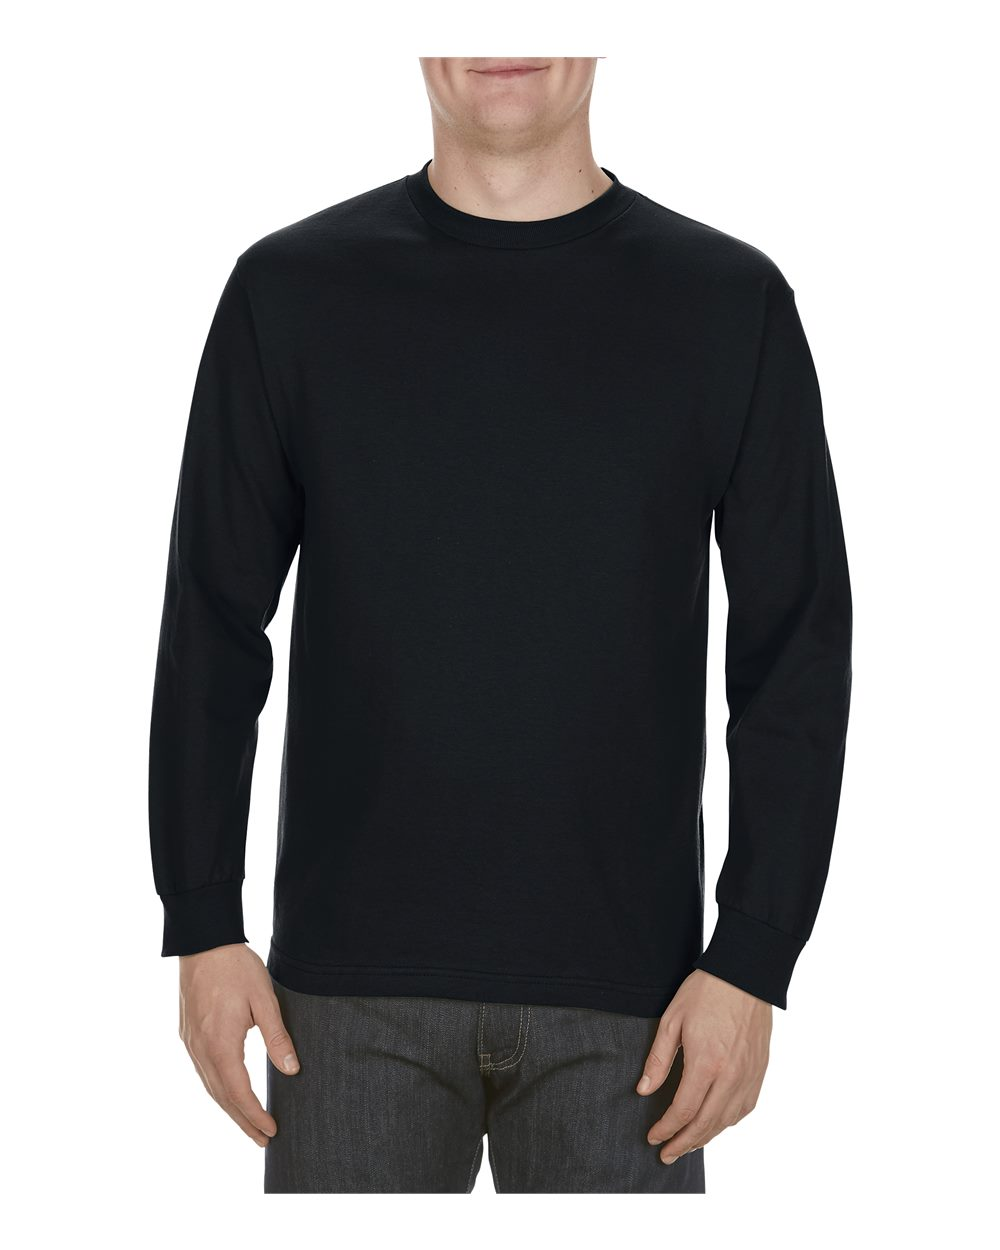 Alstyle 1904 - Heavyweight Long Sleeve Tee